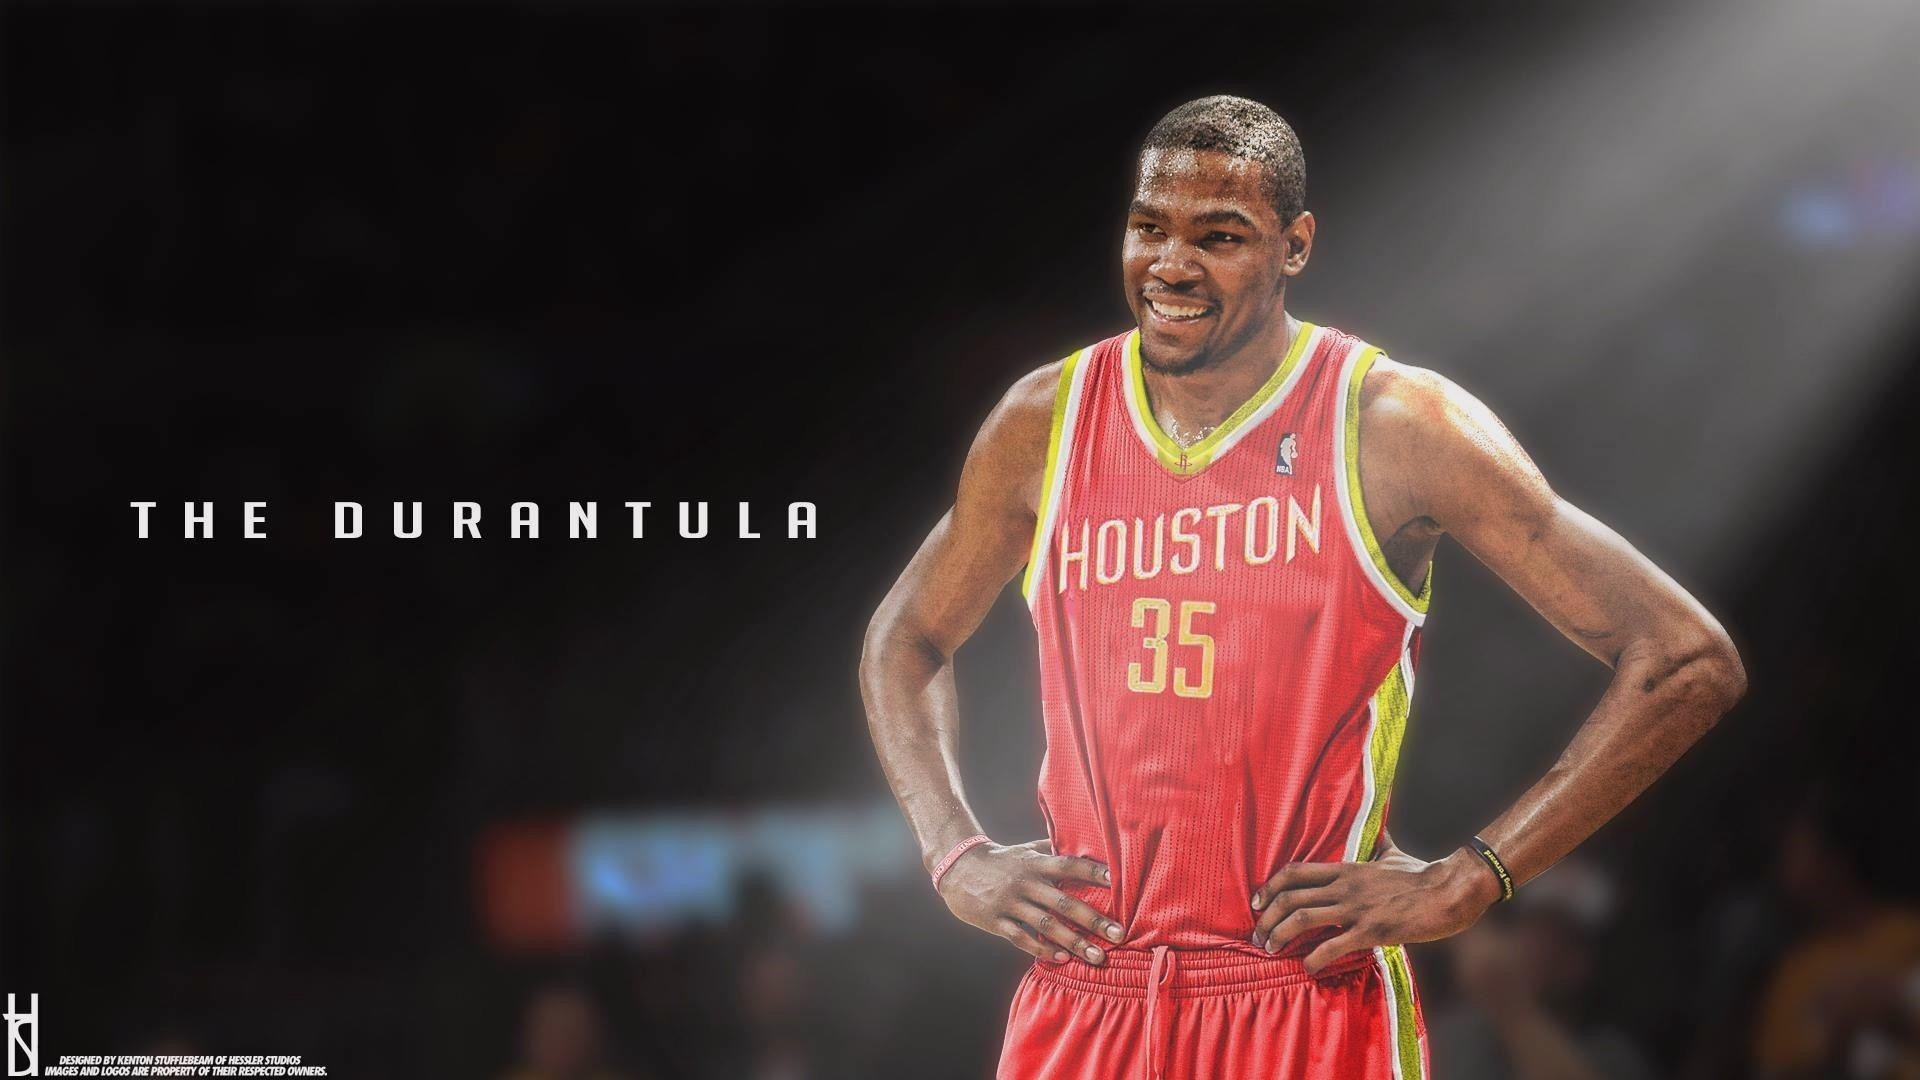 Kevin Durant Wallpaper image hd